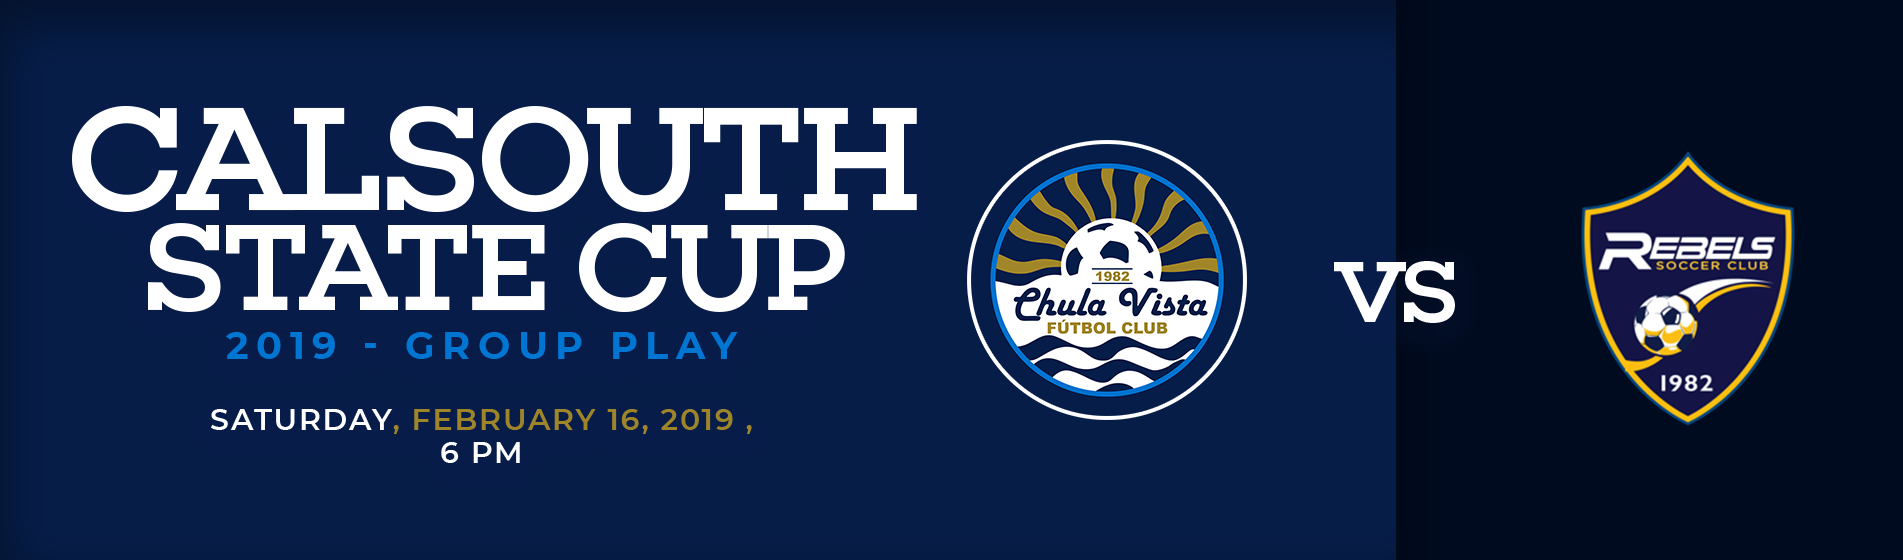 2019 Adult State Cup Begins with Local Derby